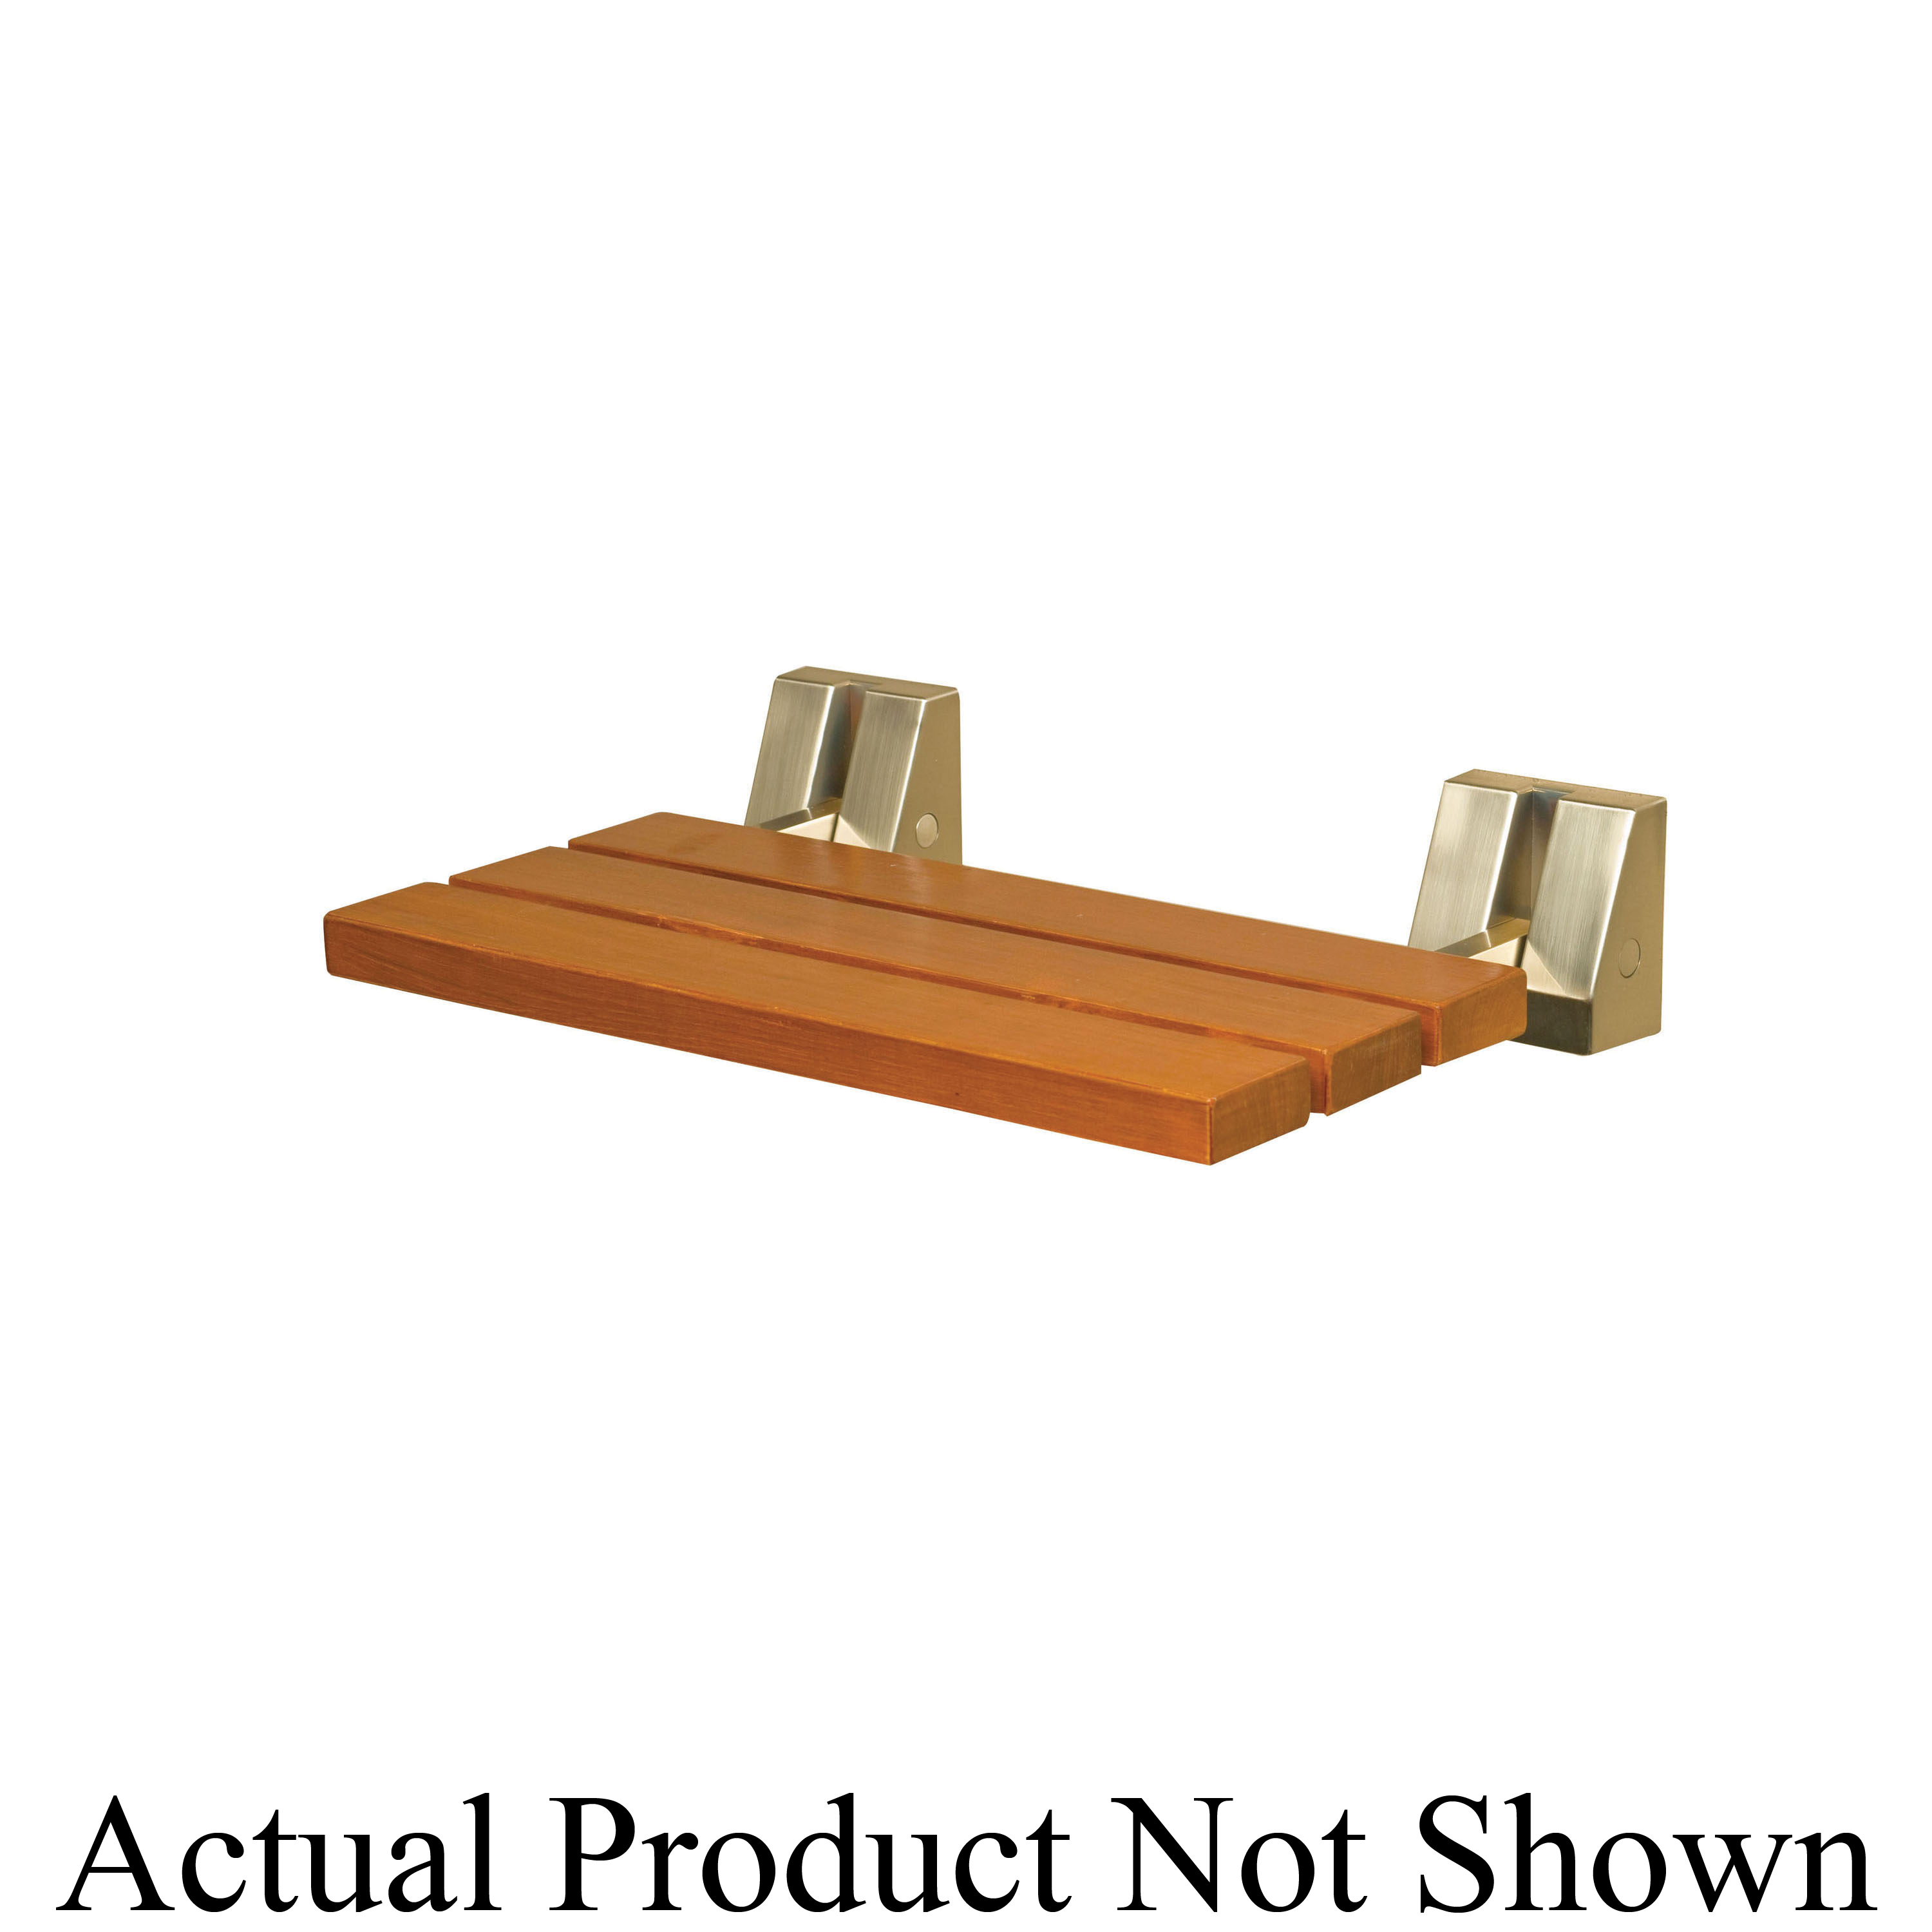 Steamist® 9106 Tilt Up Bath Seat With Brass Tubular Support Arm, Wall Mount, 250 lb, Teakwood, Import